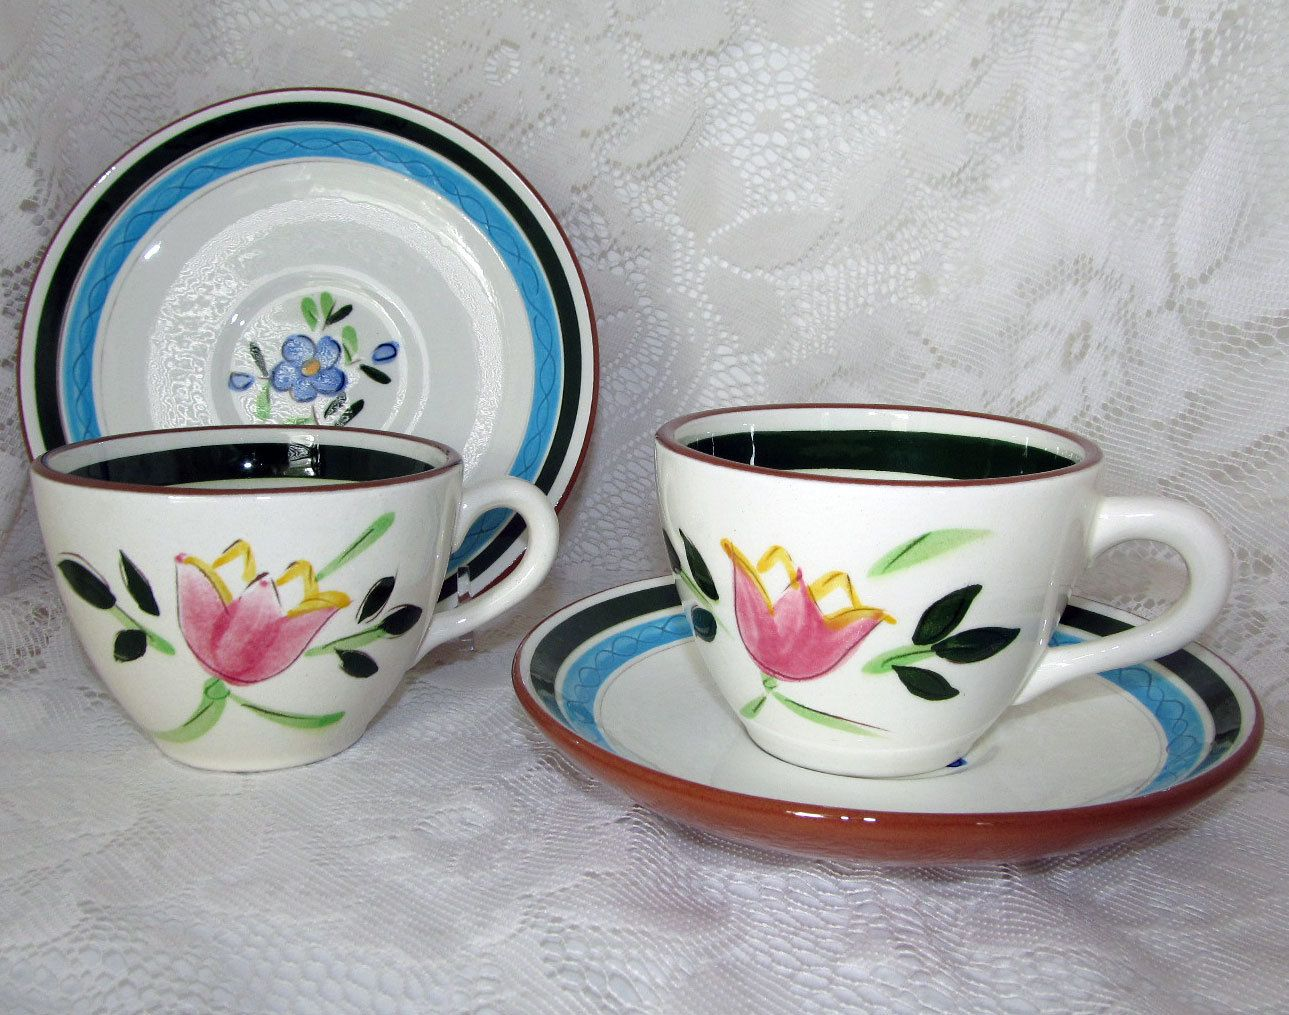 Stangl Pottery Country Garden Coffee Cups or Tea Cups and Saucers. Cup Shape # 4024. Pieces offered by 2kVintageShop on Etsy & Stangl Country Garden Coffee Cups or Tea Cups and Saucers Vintage ...